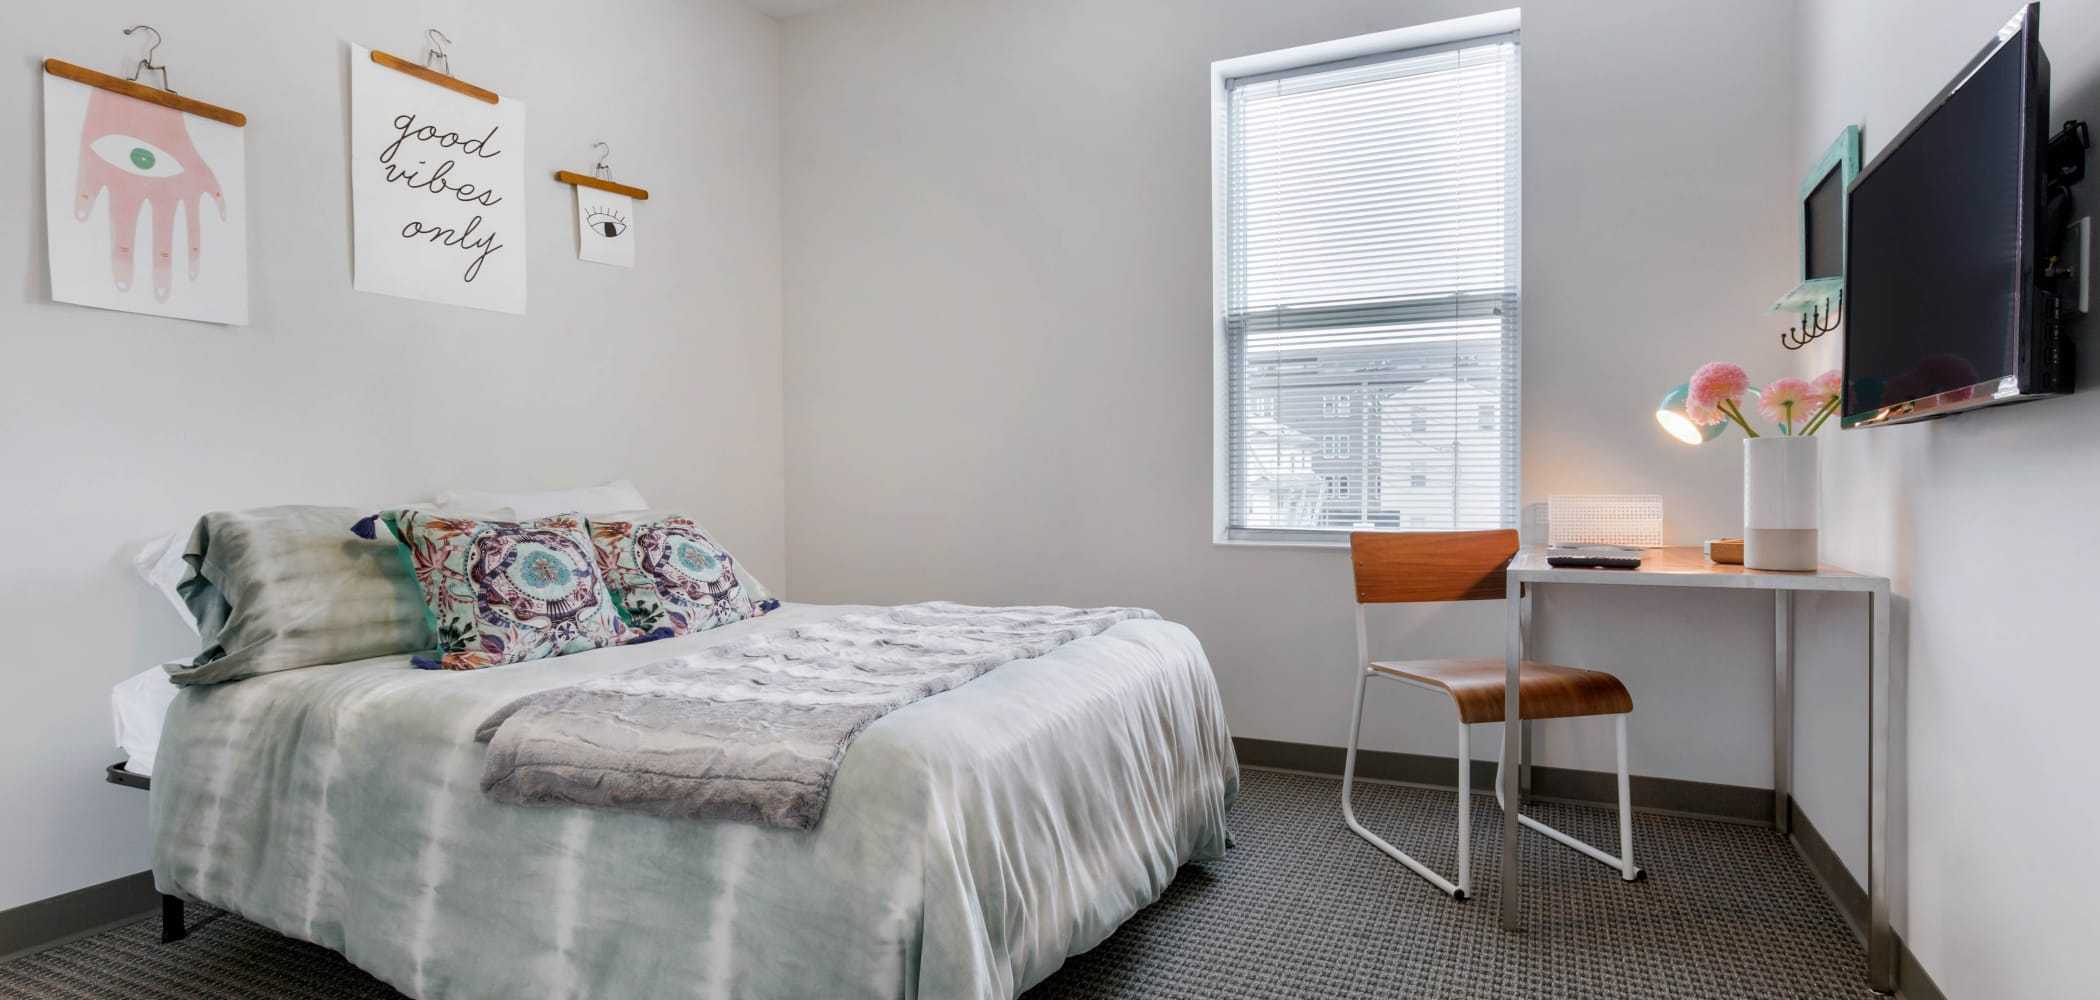 Bedroom with space to study at West Quad in Champaign, Illinois